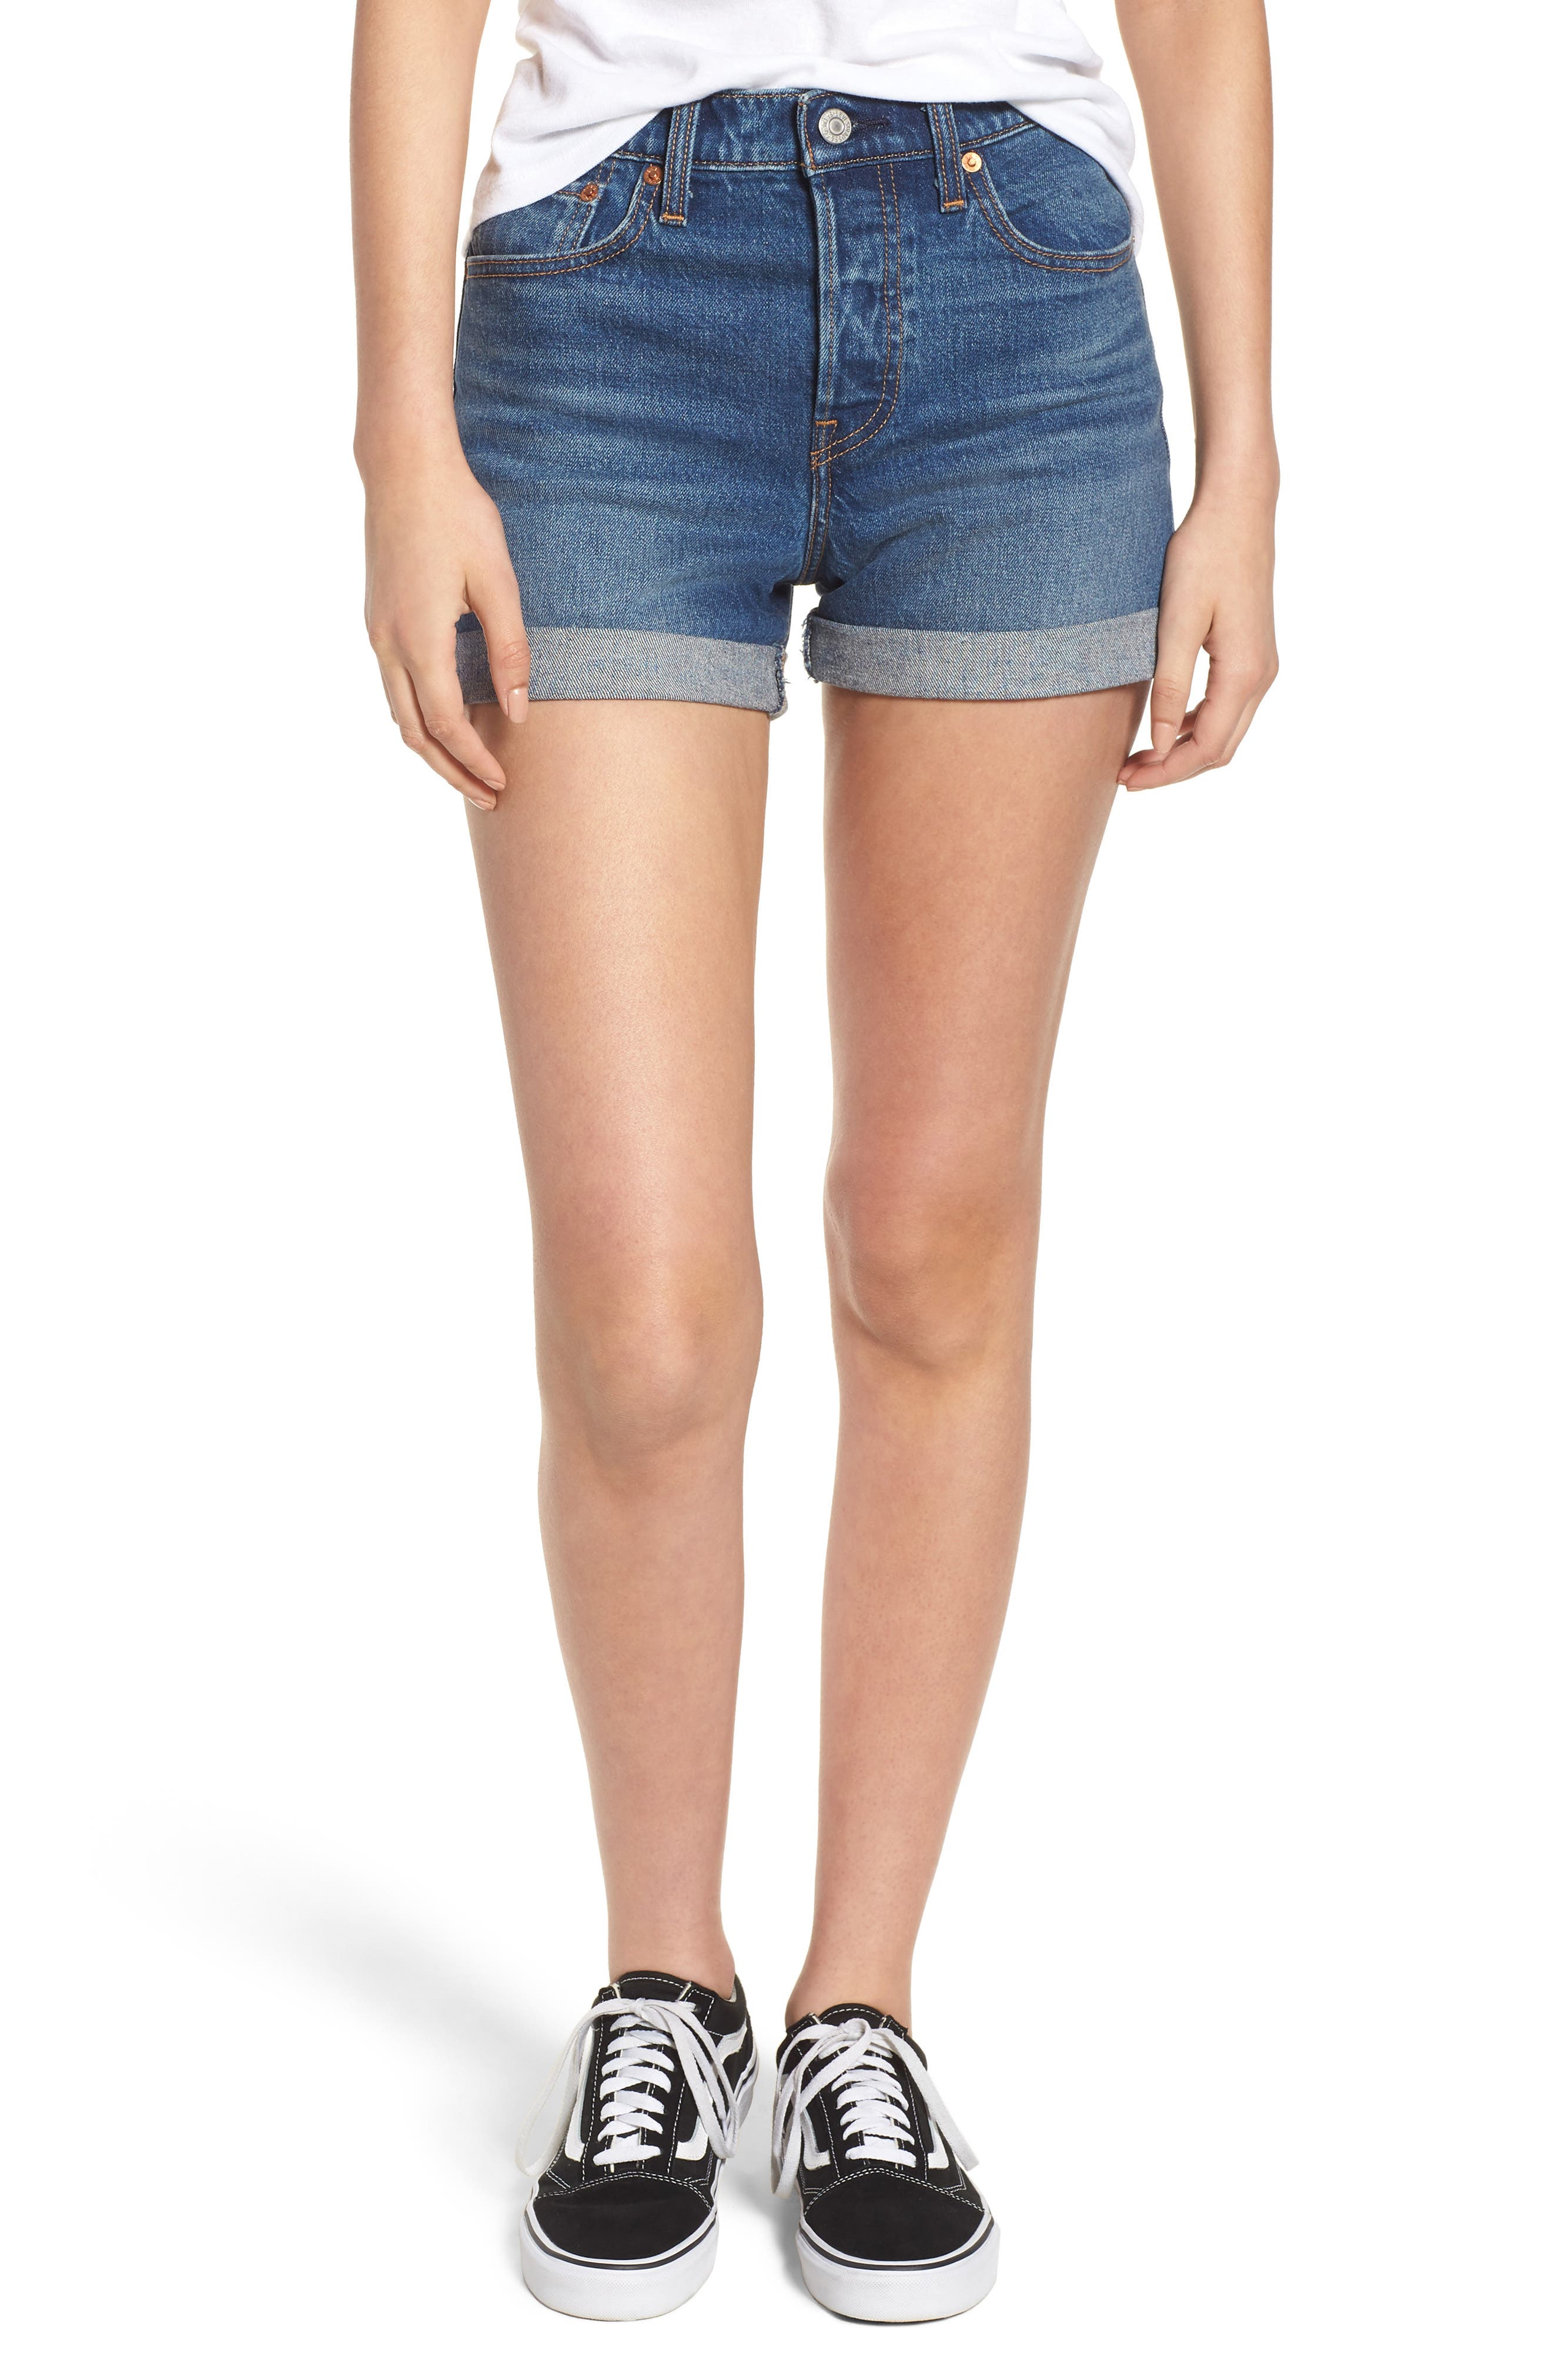 Wedgie Update Denim Shorts,                             Main thumbnail 1, color,                             401